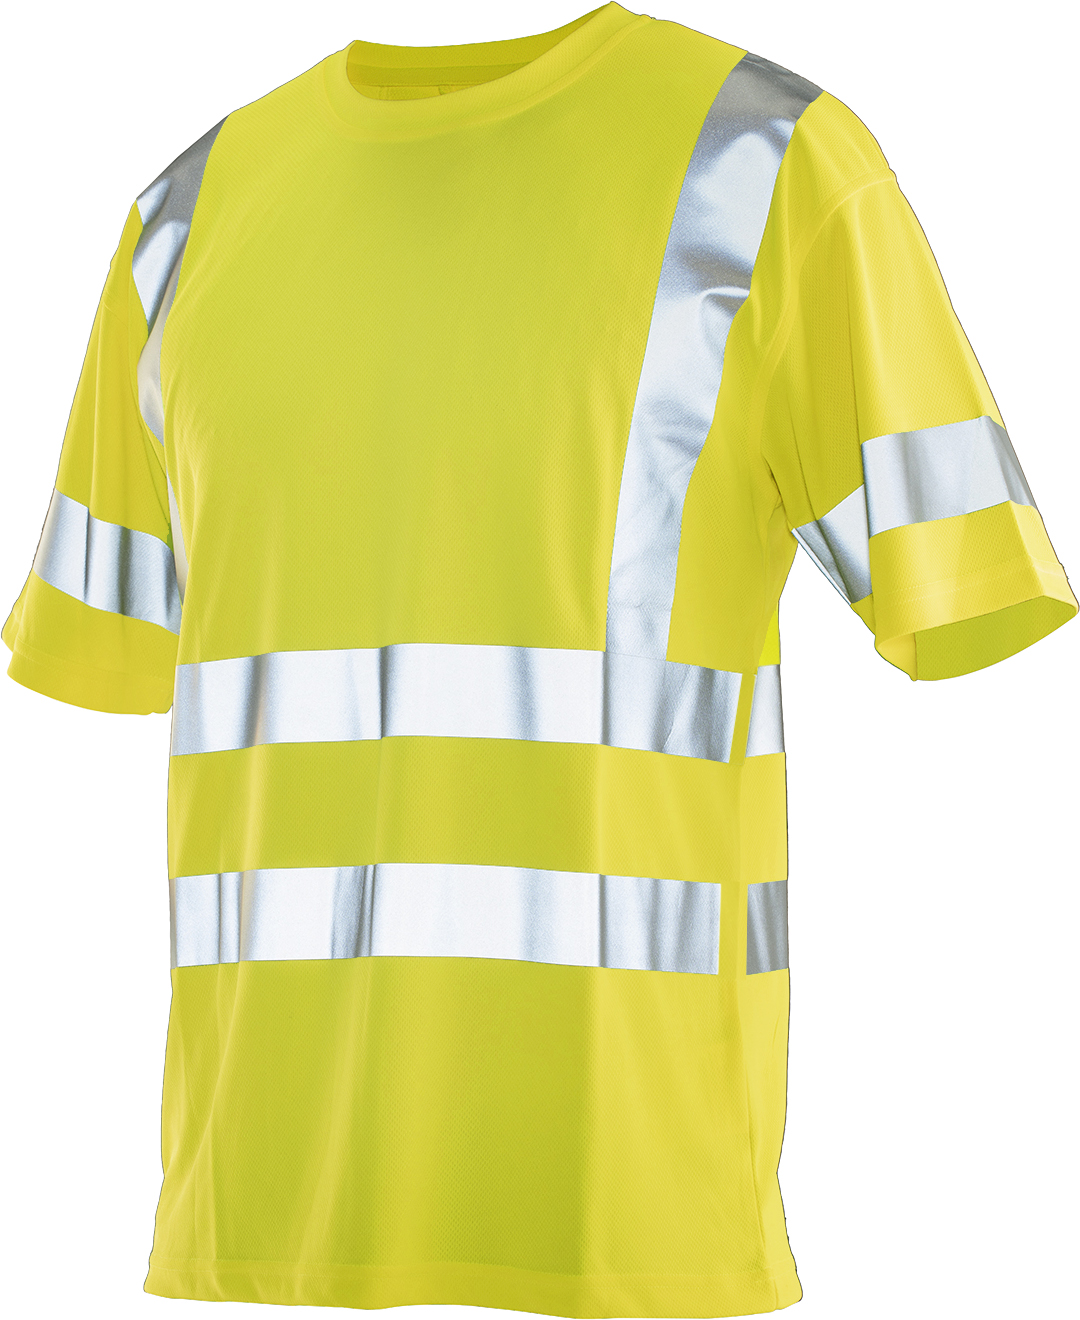 T-shirt high-vis